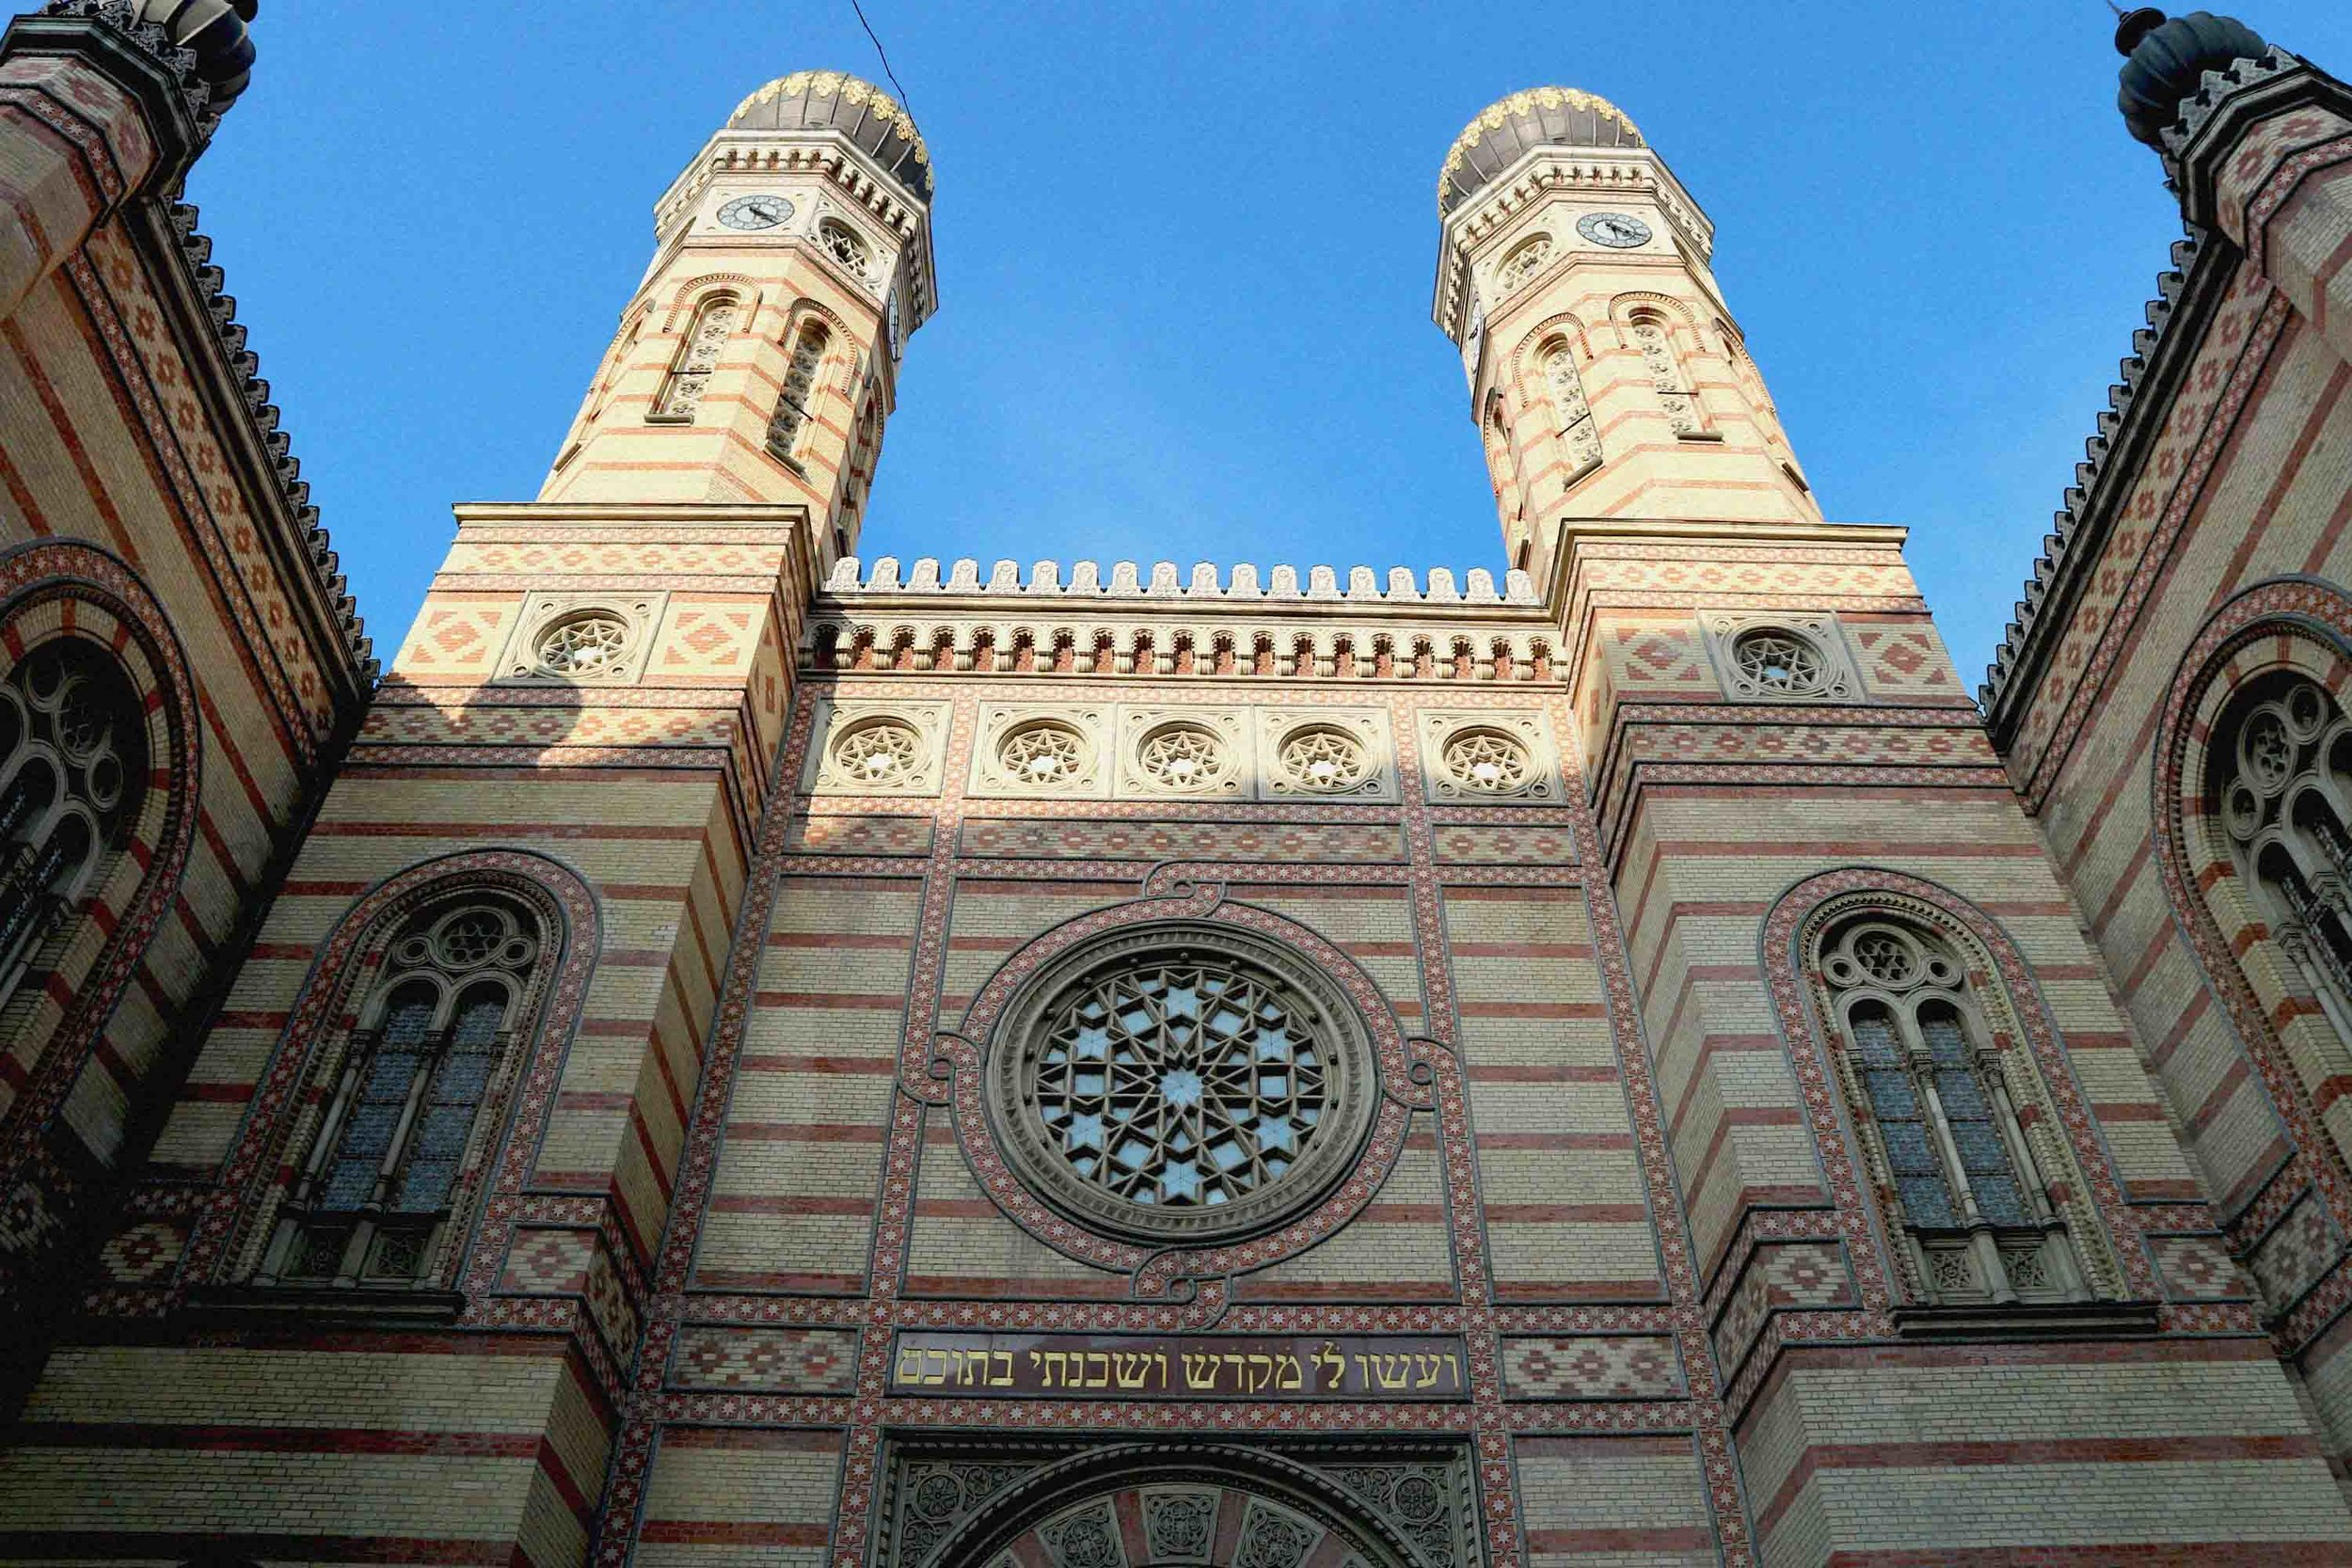 The Dohany Street Synagogue